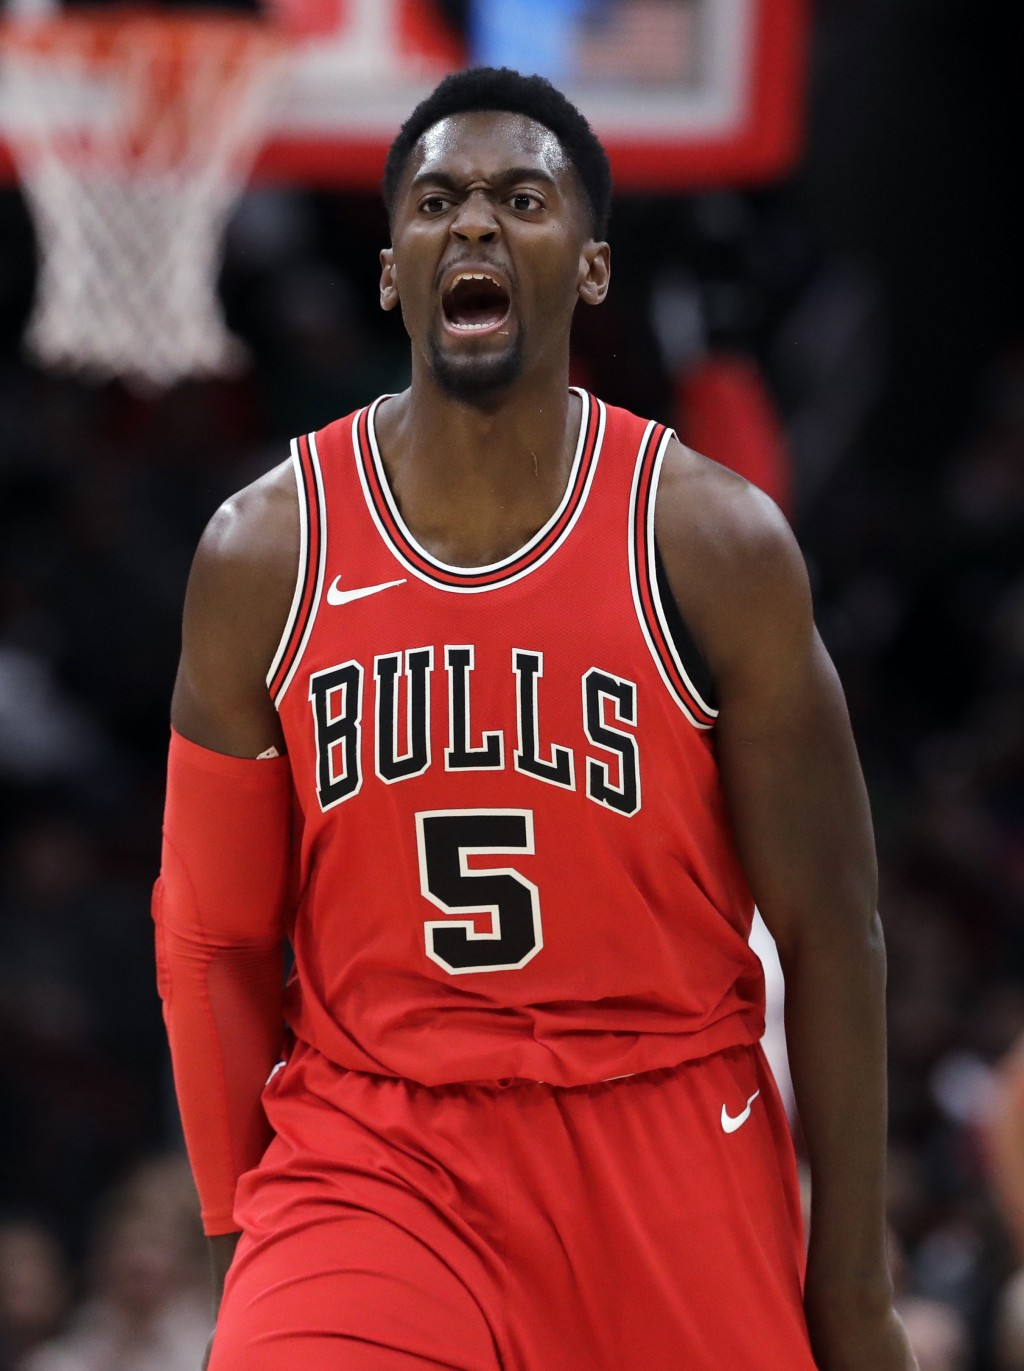 047d59b3 Chicago Bulls forward Bobby Portis reacts after he made a three-point  basket against the